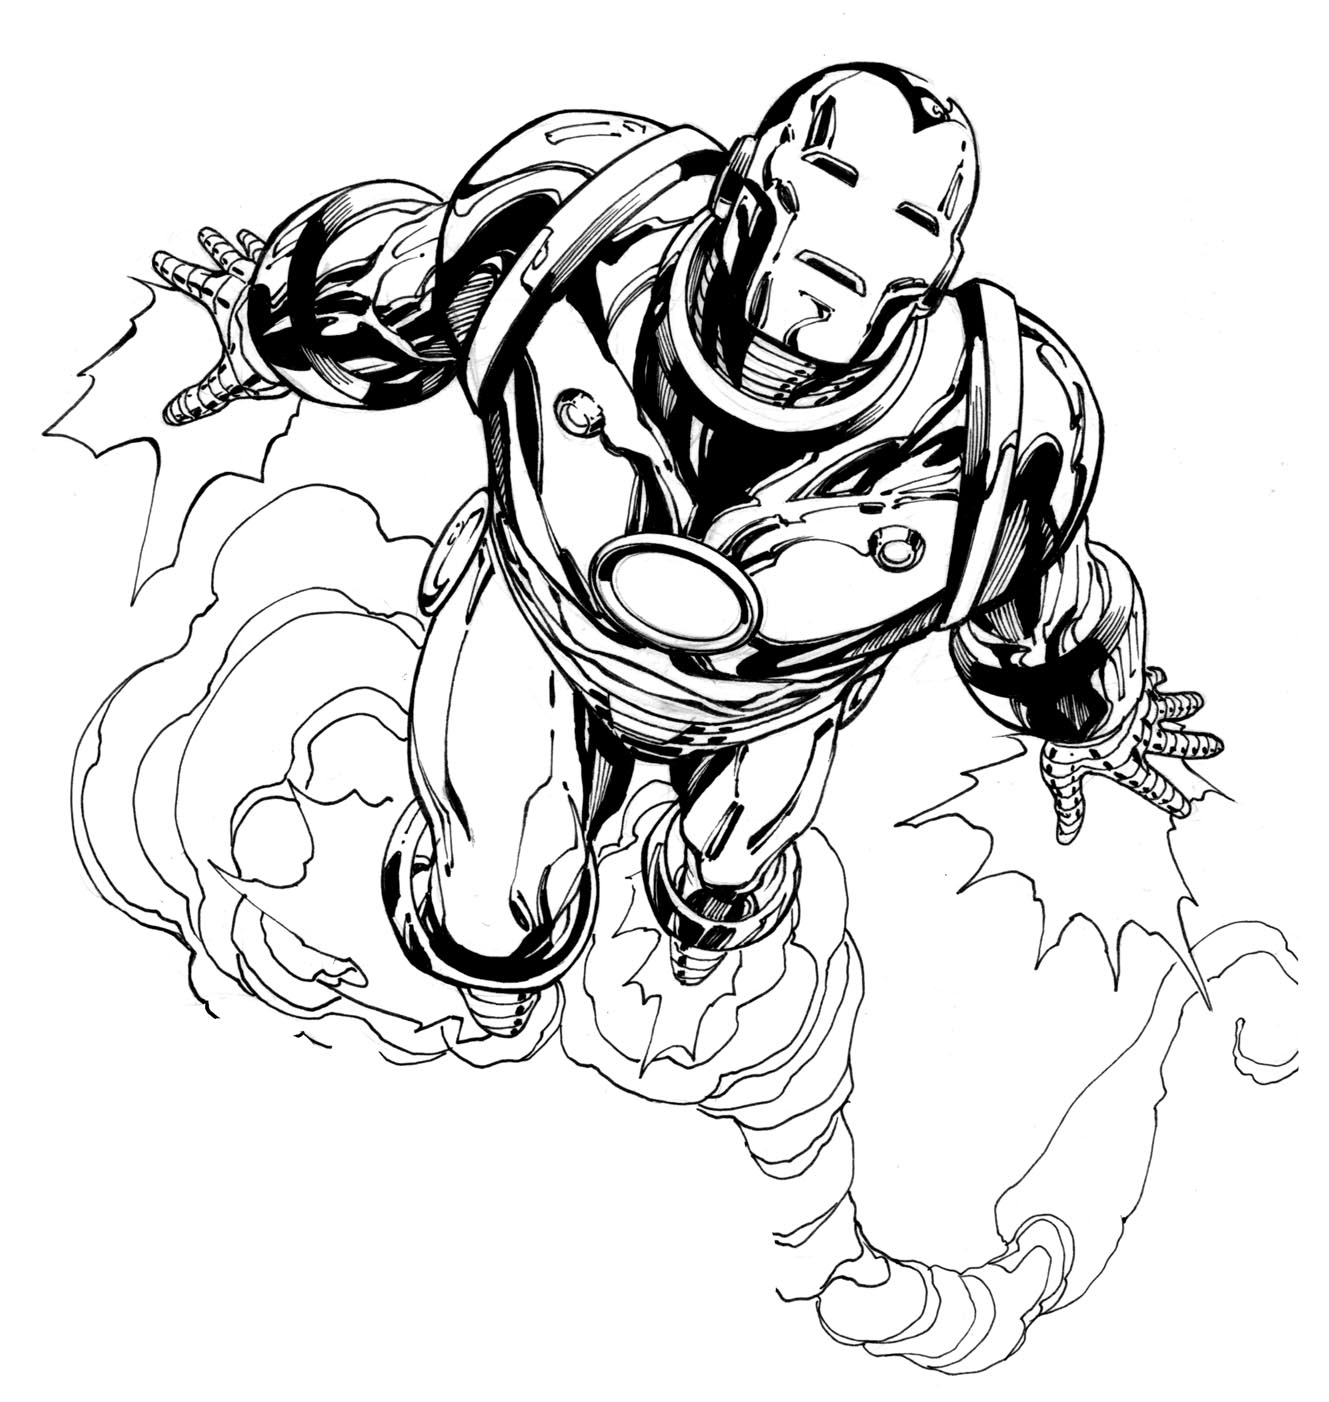 ironman images to color free printable iron man coloring pages for kids cool2bkids images to ironman color